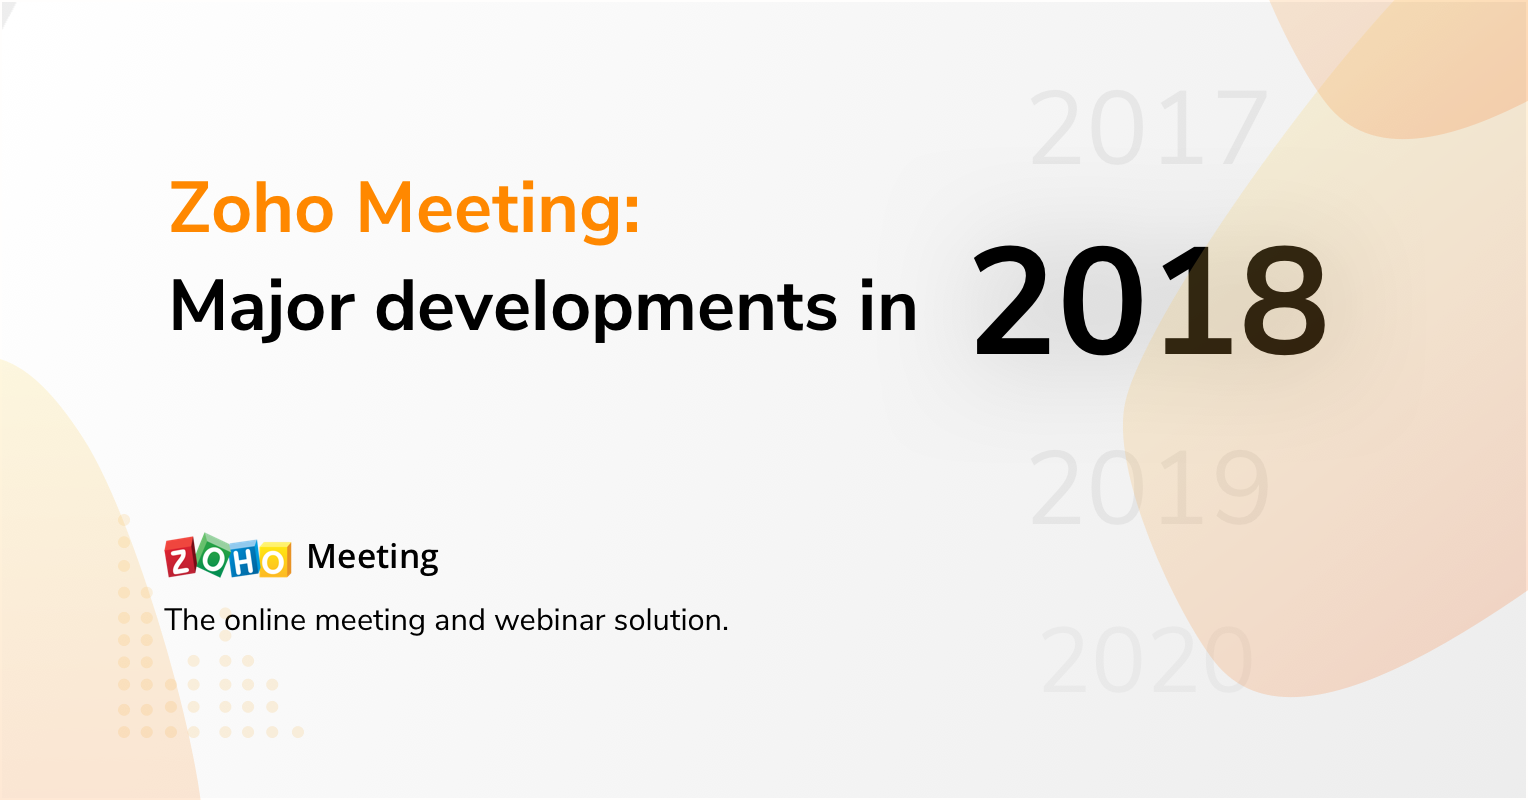 Zoho Meeting: Evolution through 2018